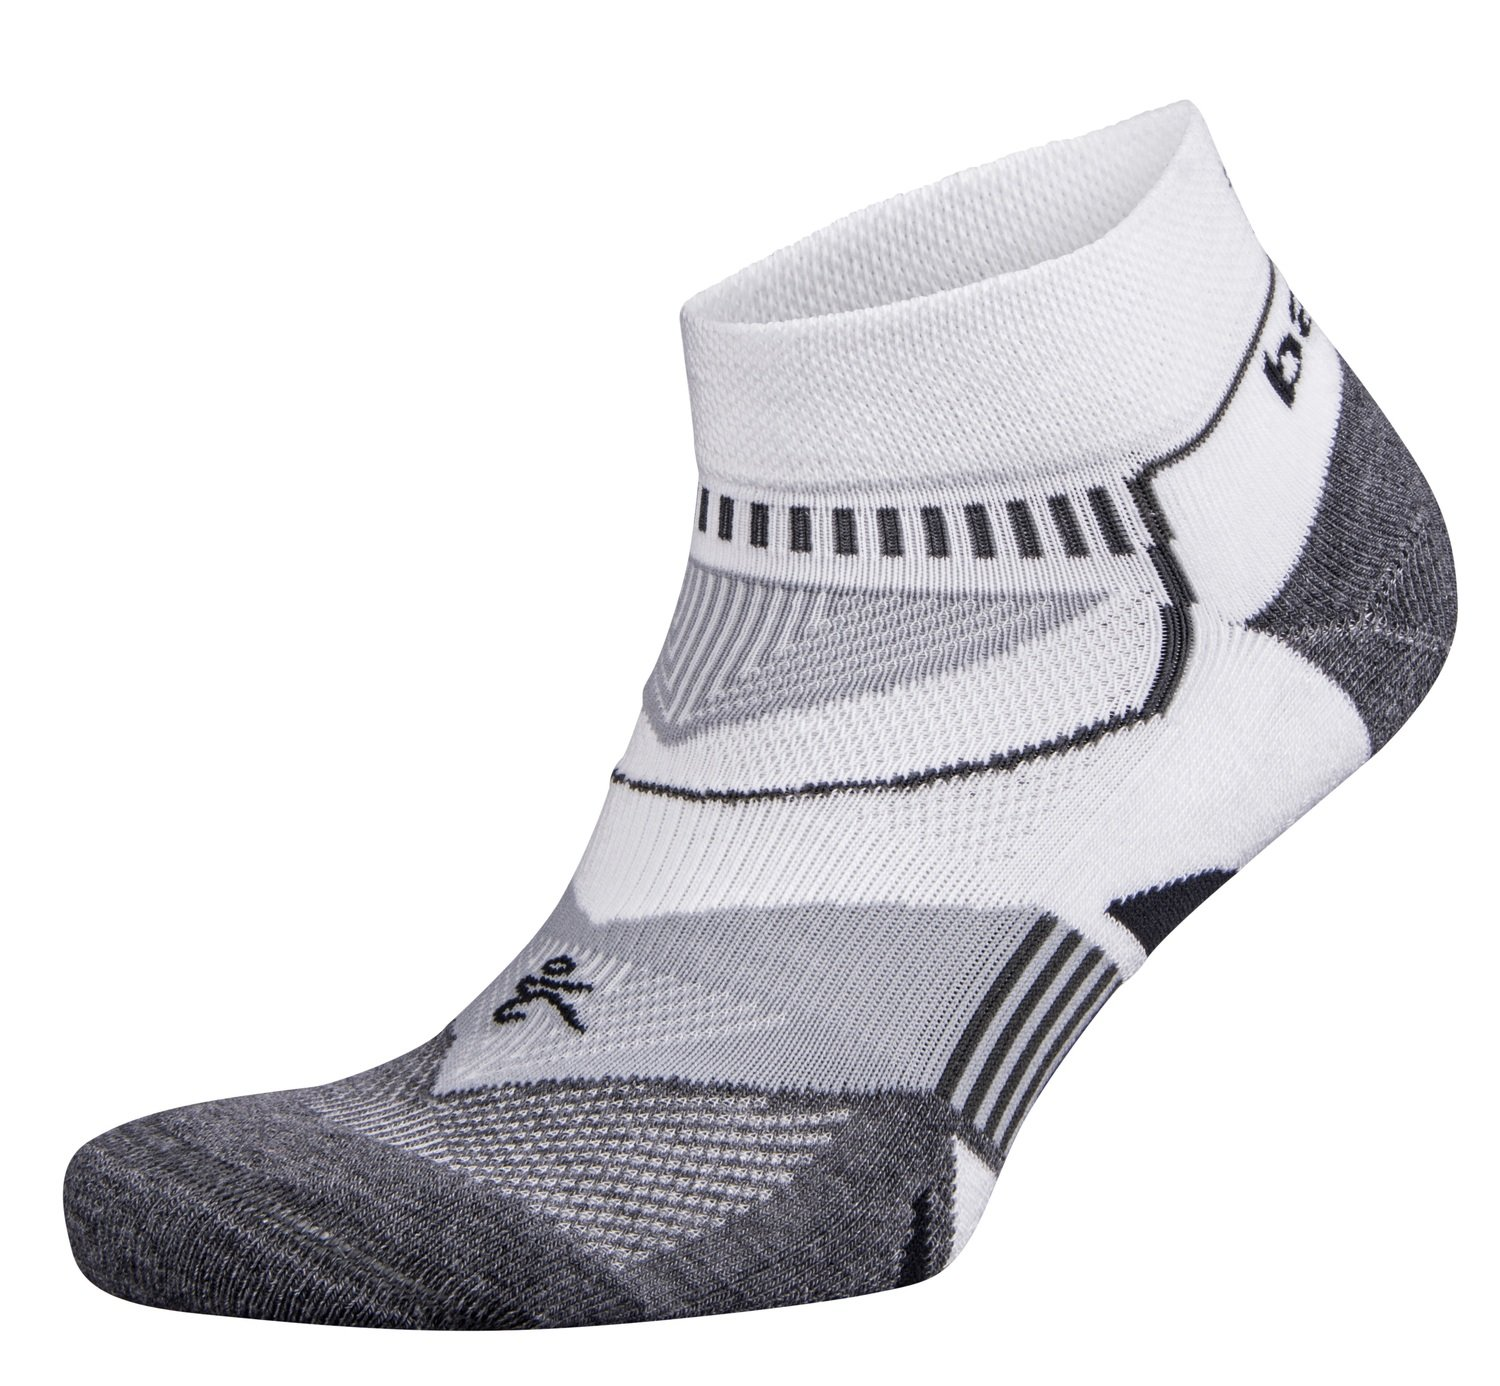 Enduro Low Cut Socks White/Grey/Heather